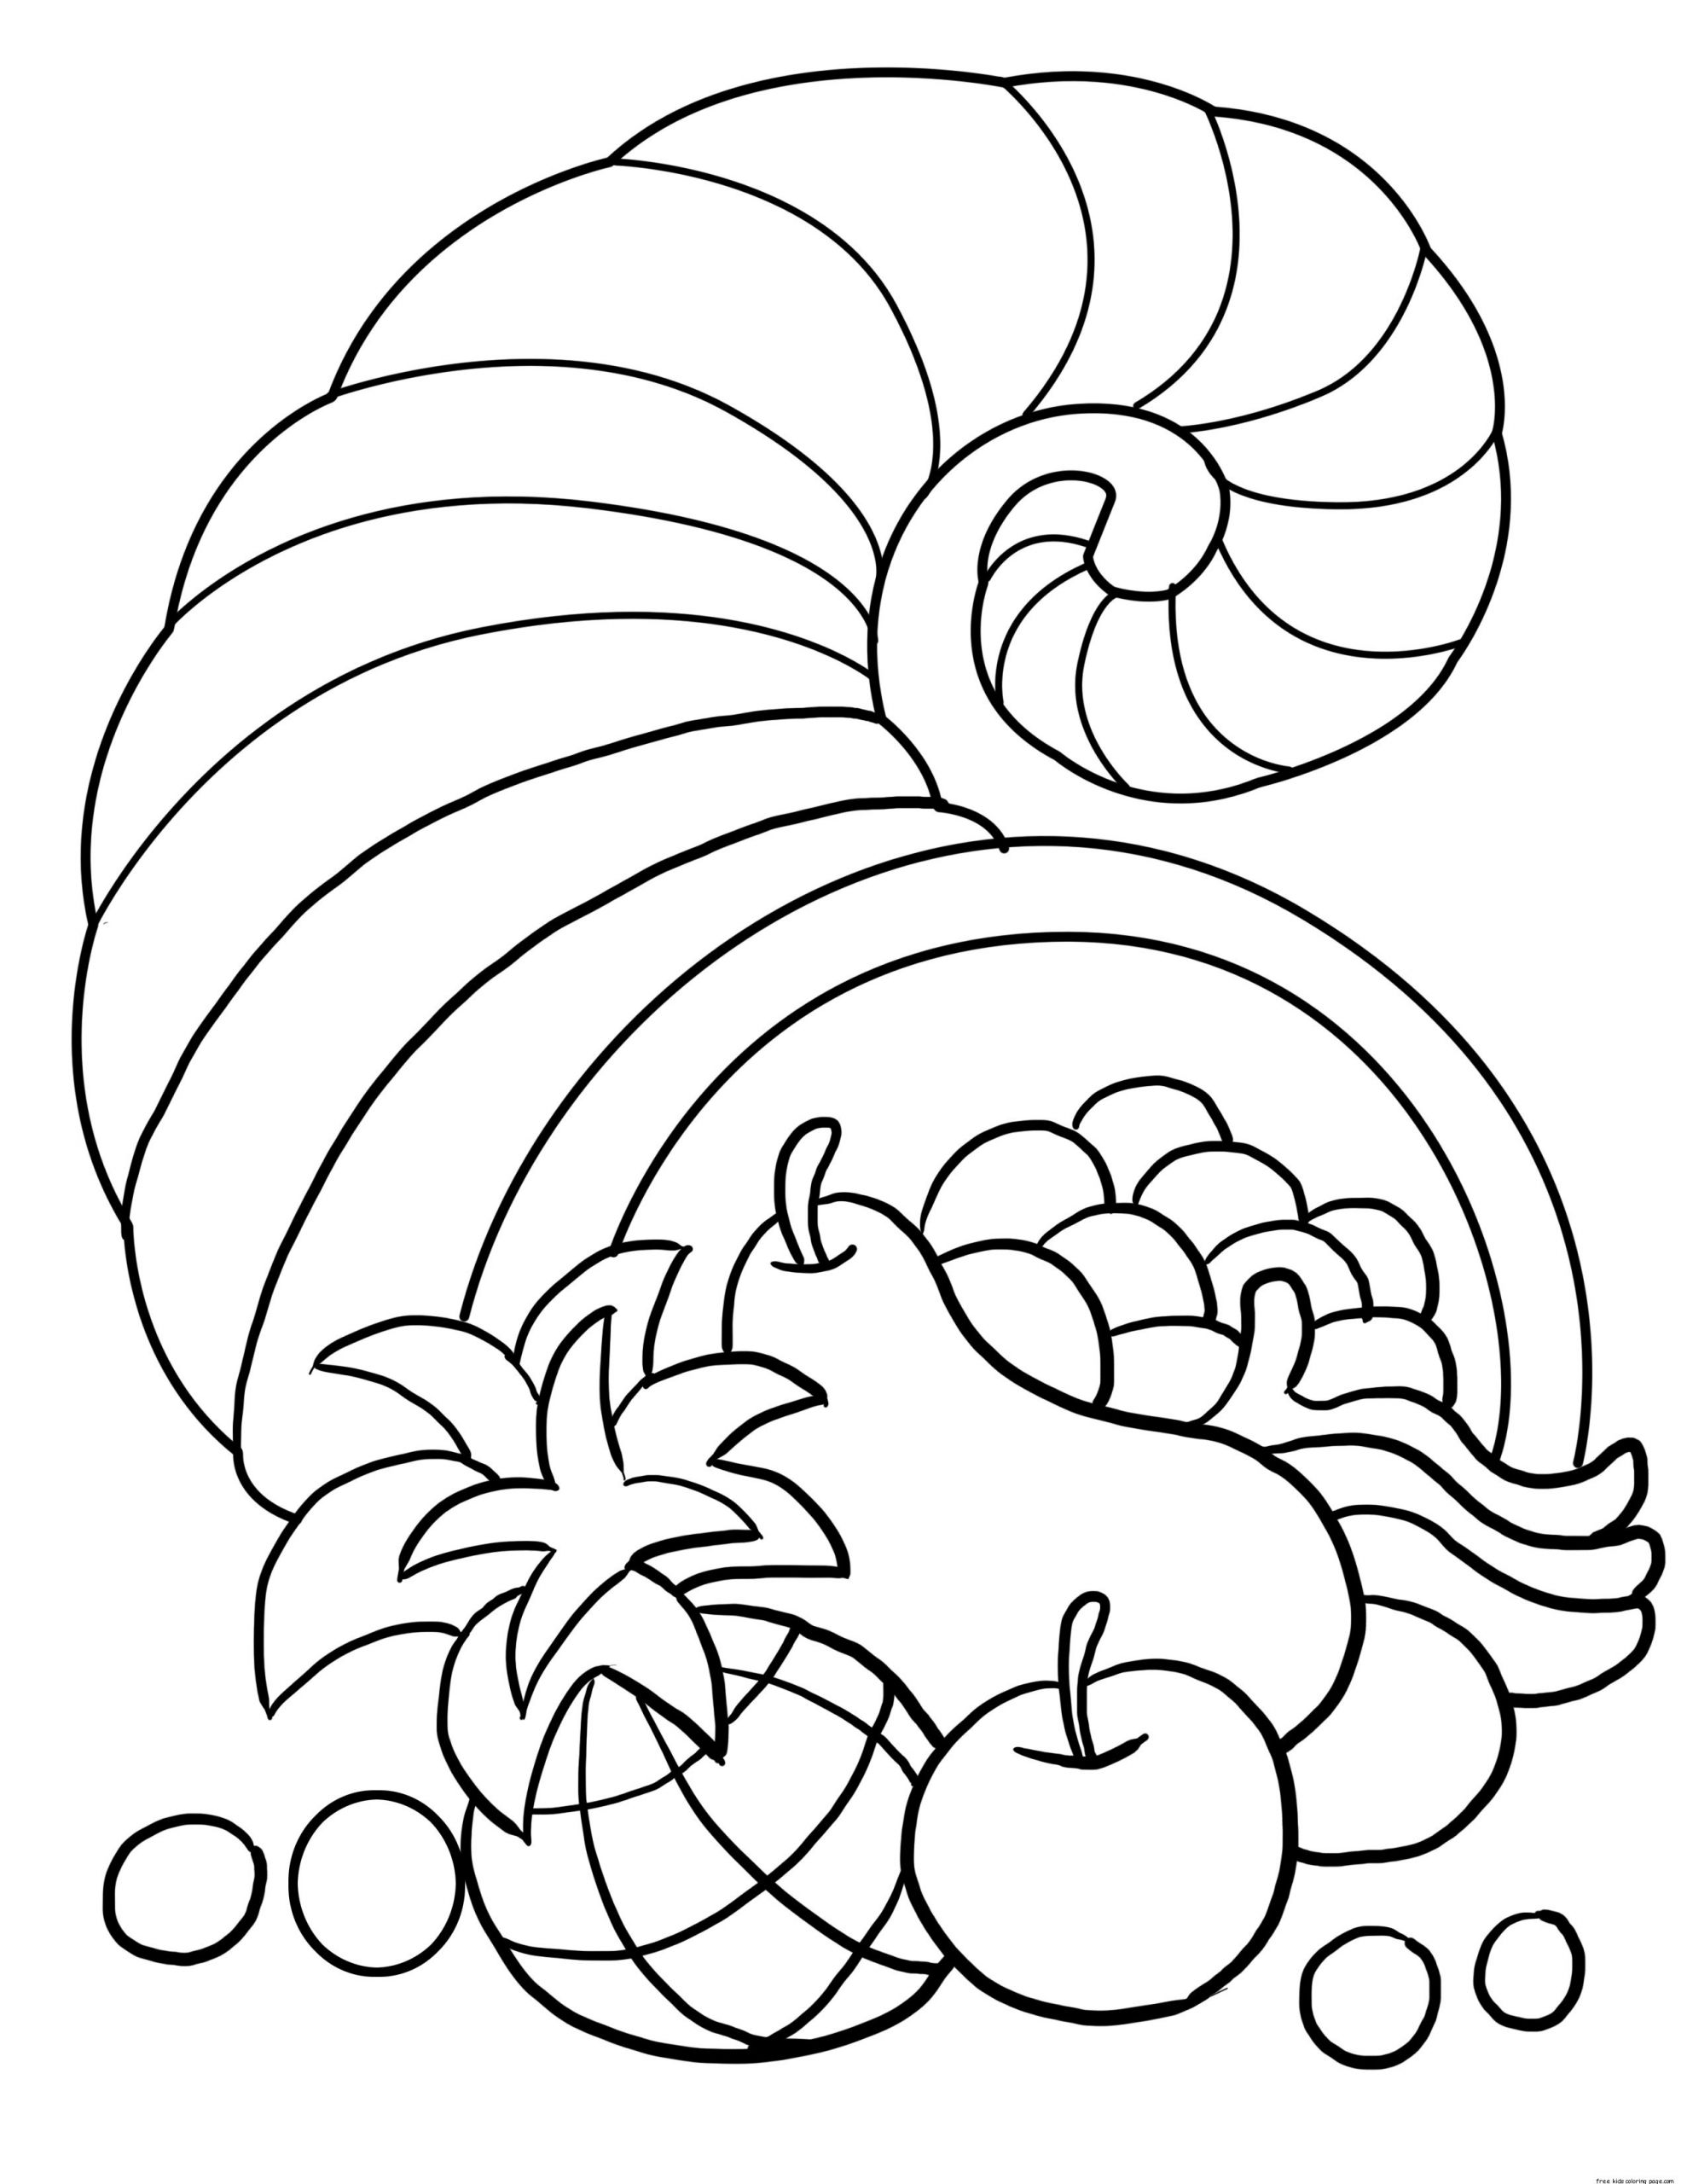 Thanksgiving Coloring Pages For Children  thanksgiving cornucopia coloring sheet for kidsFree